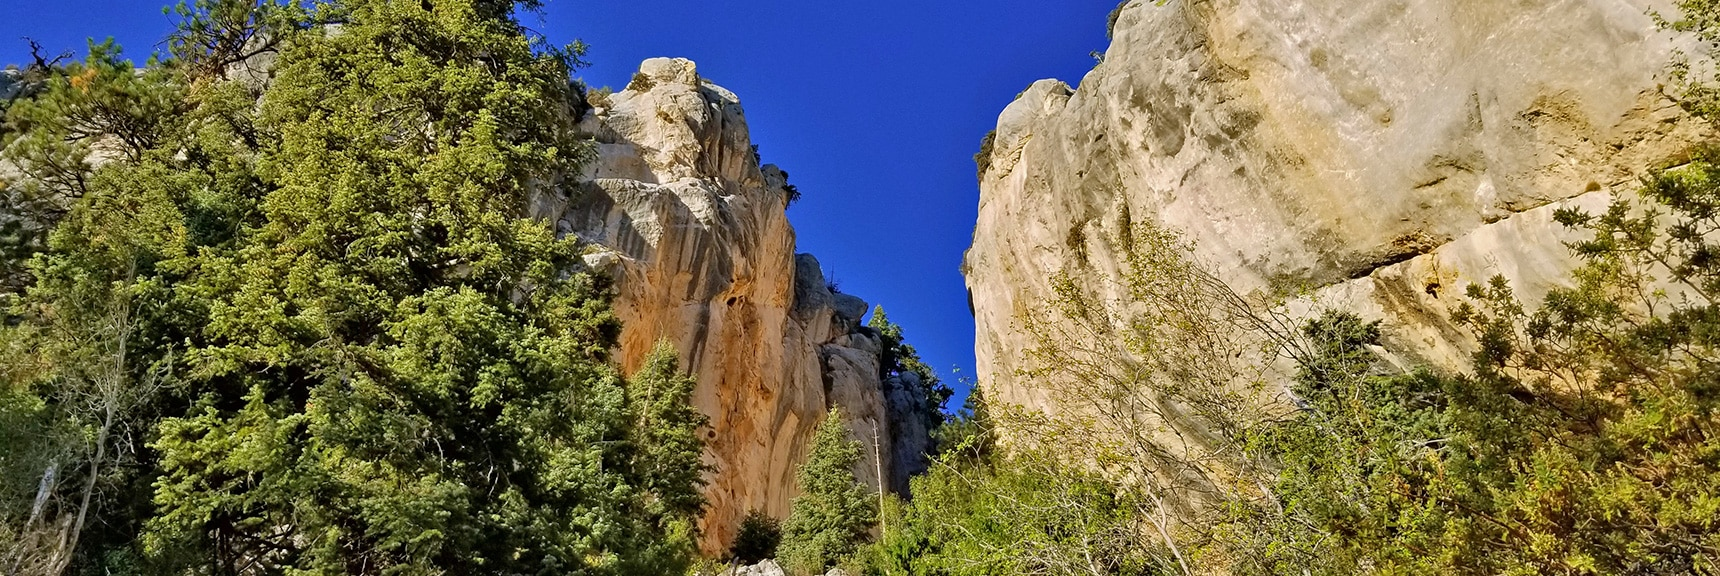 Main Climbing Area from Below | Robbers Roost and Beyond | Spring Mountains, Nevada